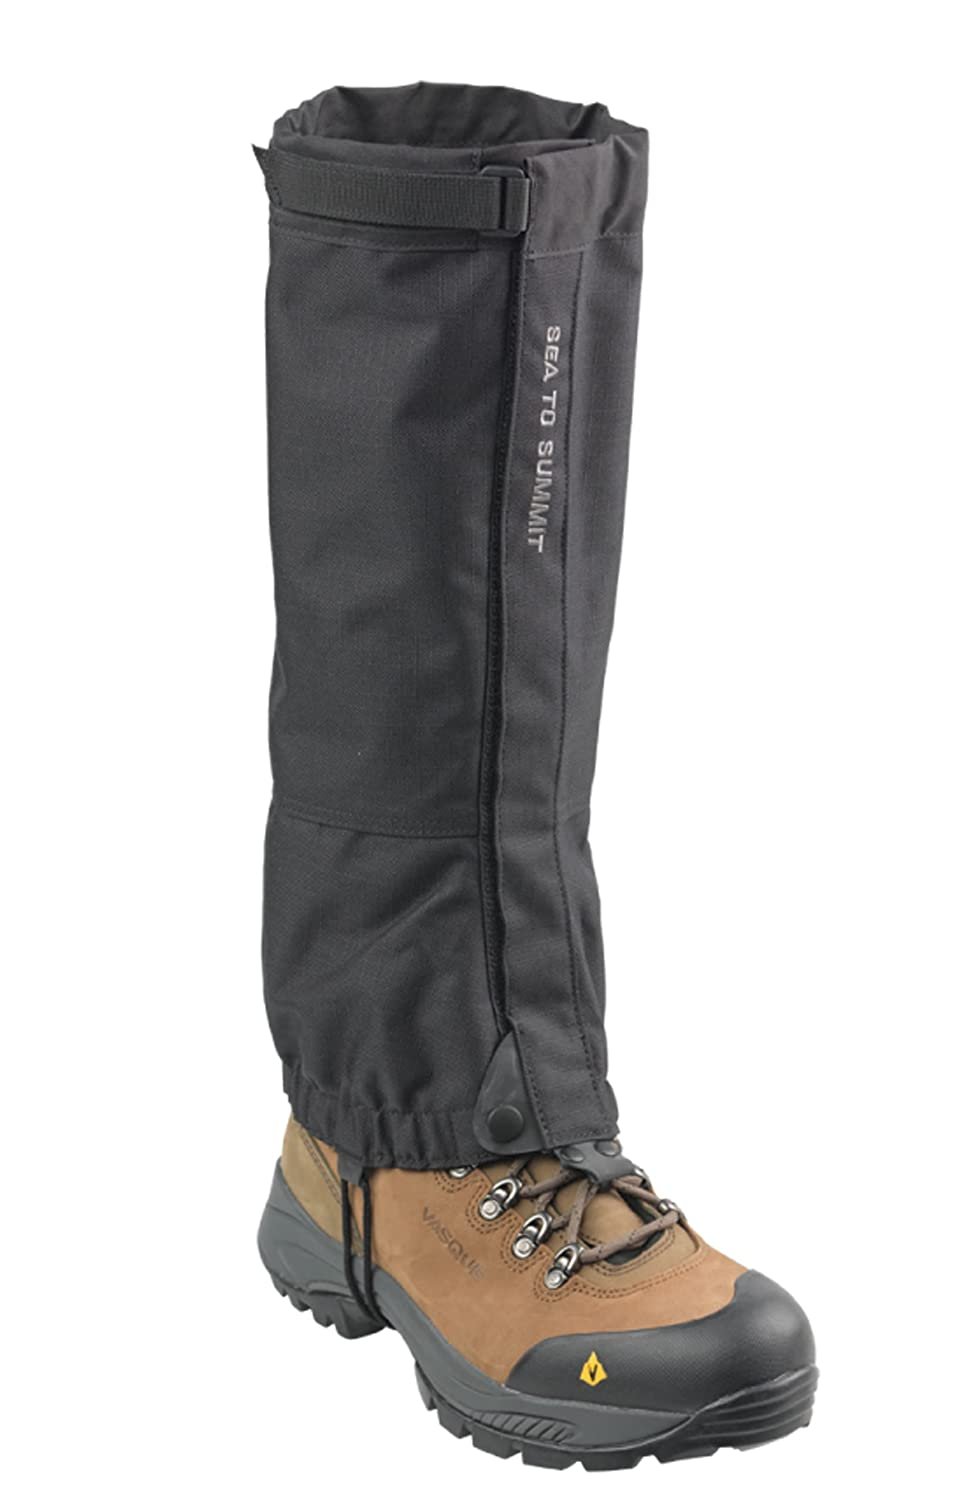 Sea to Summit Gamaschen Overland Gaiters small